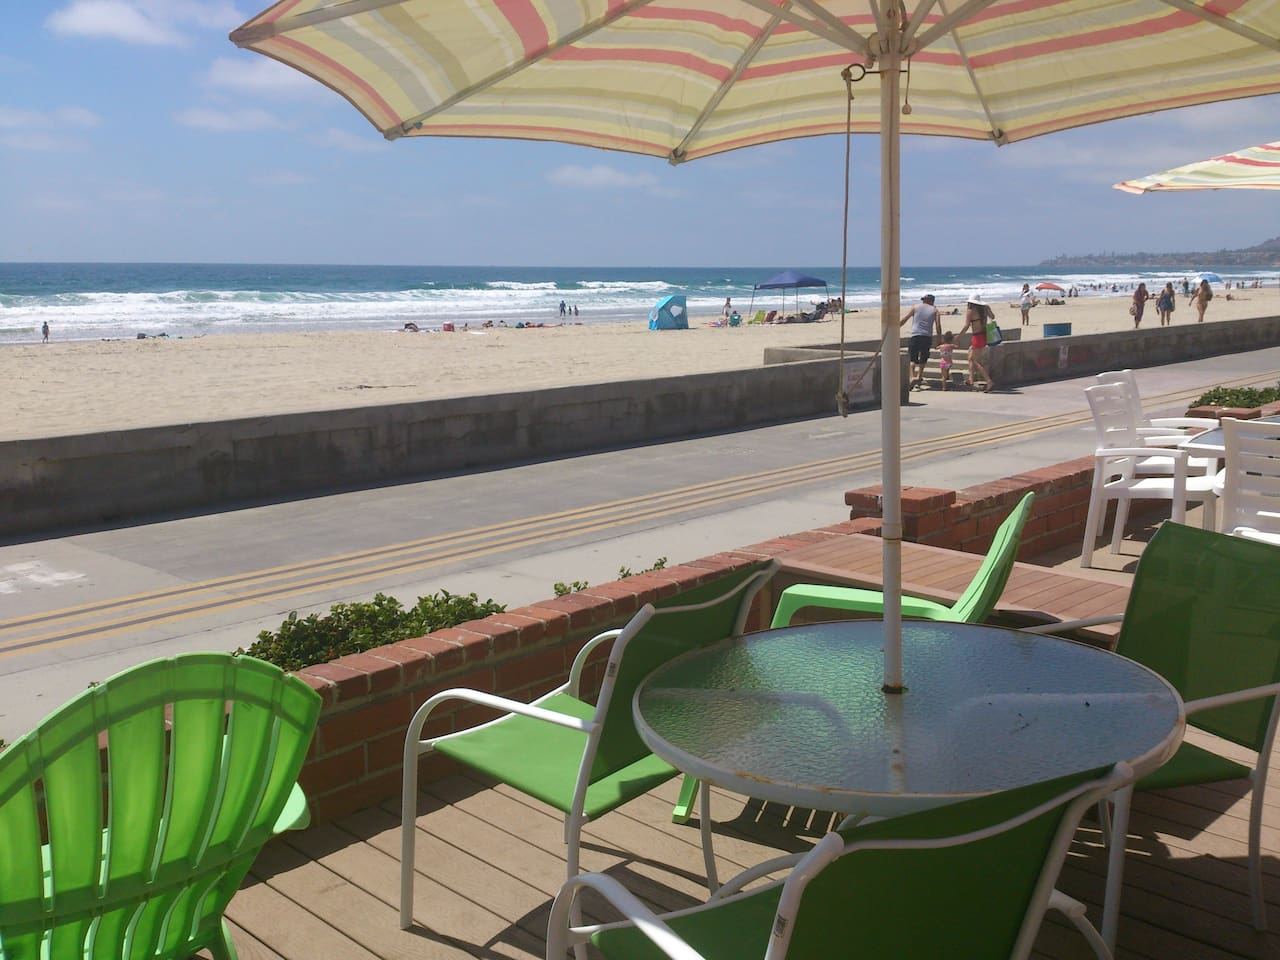 Share access to front patio bordering the boardwalk!